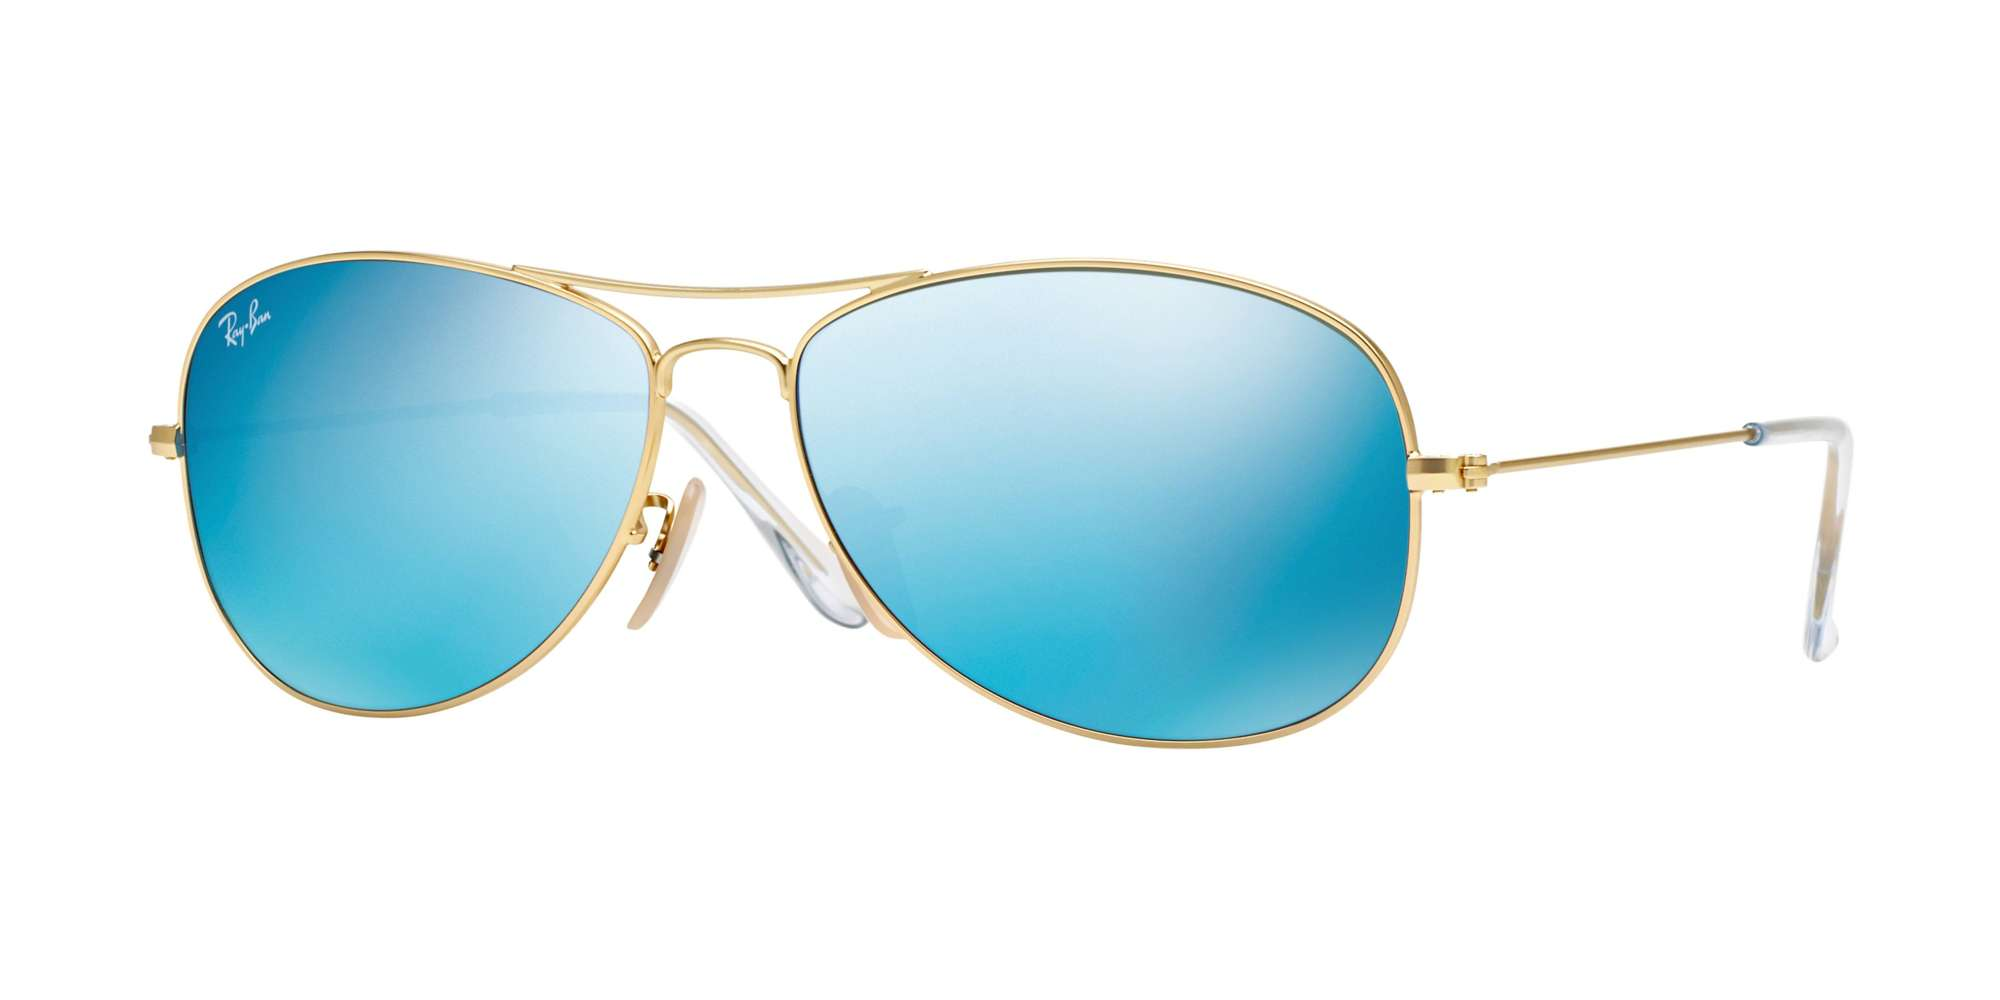 MATTE GOLD / CYCLAMEN MIRROR lenses